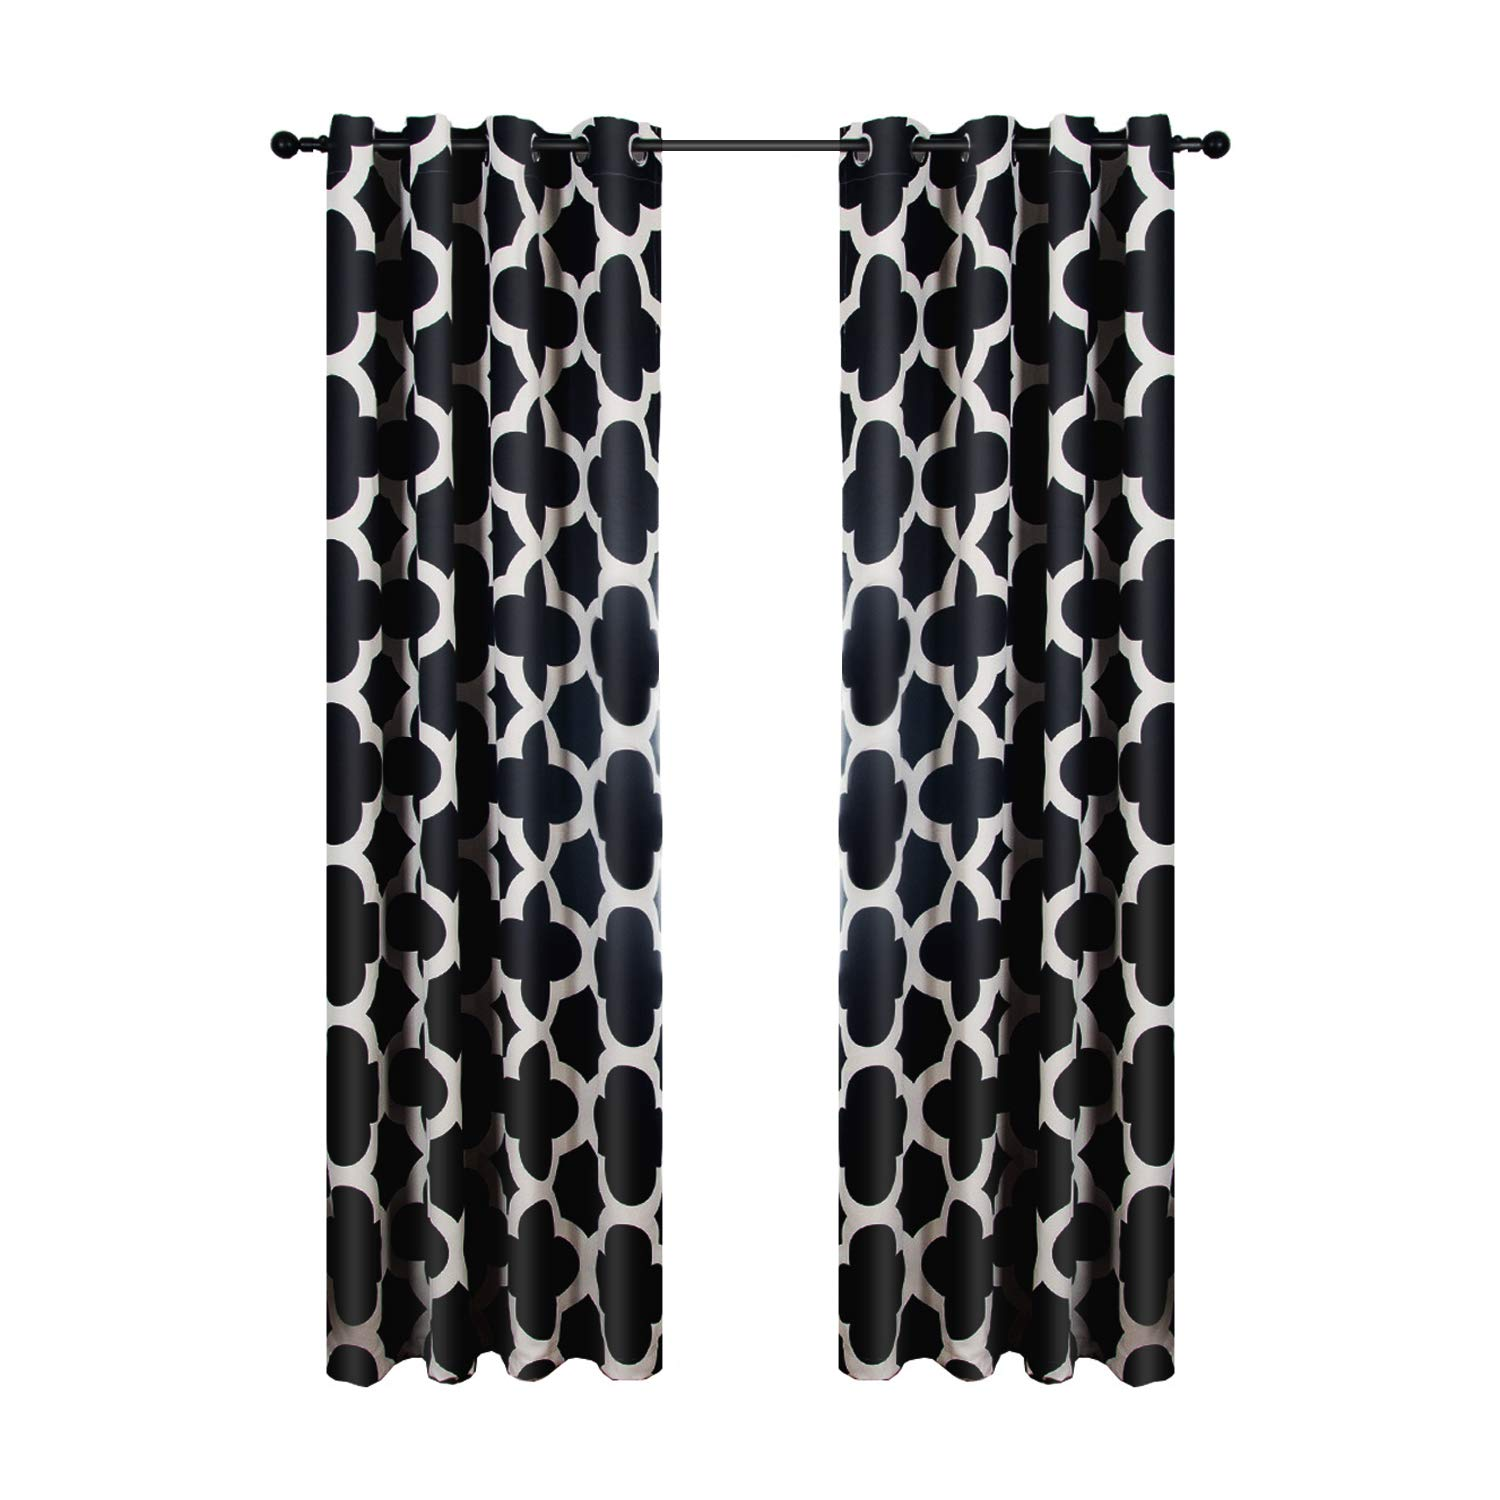 Top Finel Quatrefoil Thermal Insulated Grommets Blackout Curtains for Bedroom, 54 X 63 inch Length ,2 Panels,Black CL094Black5463-2